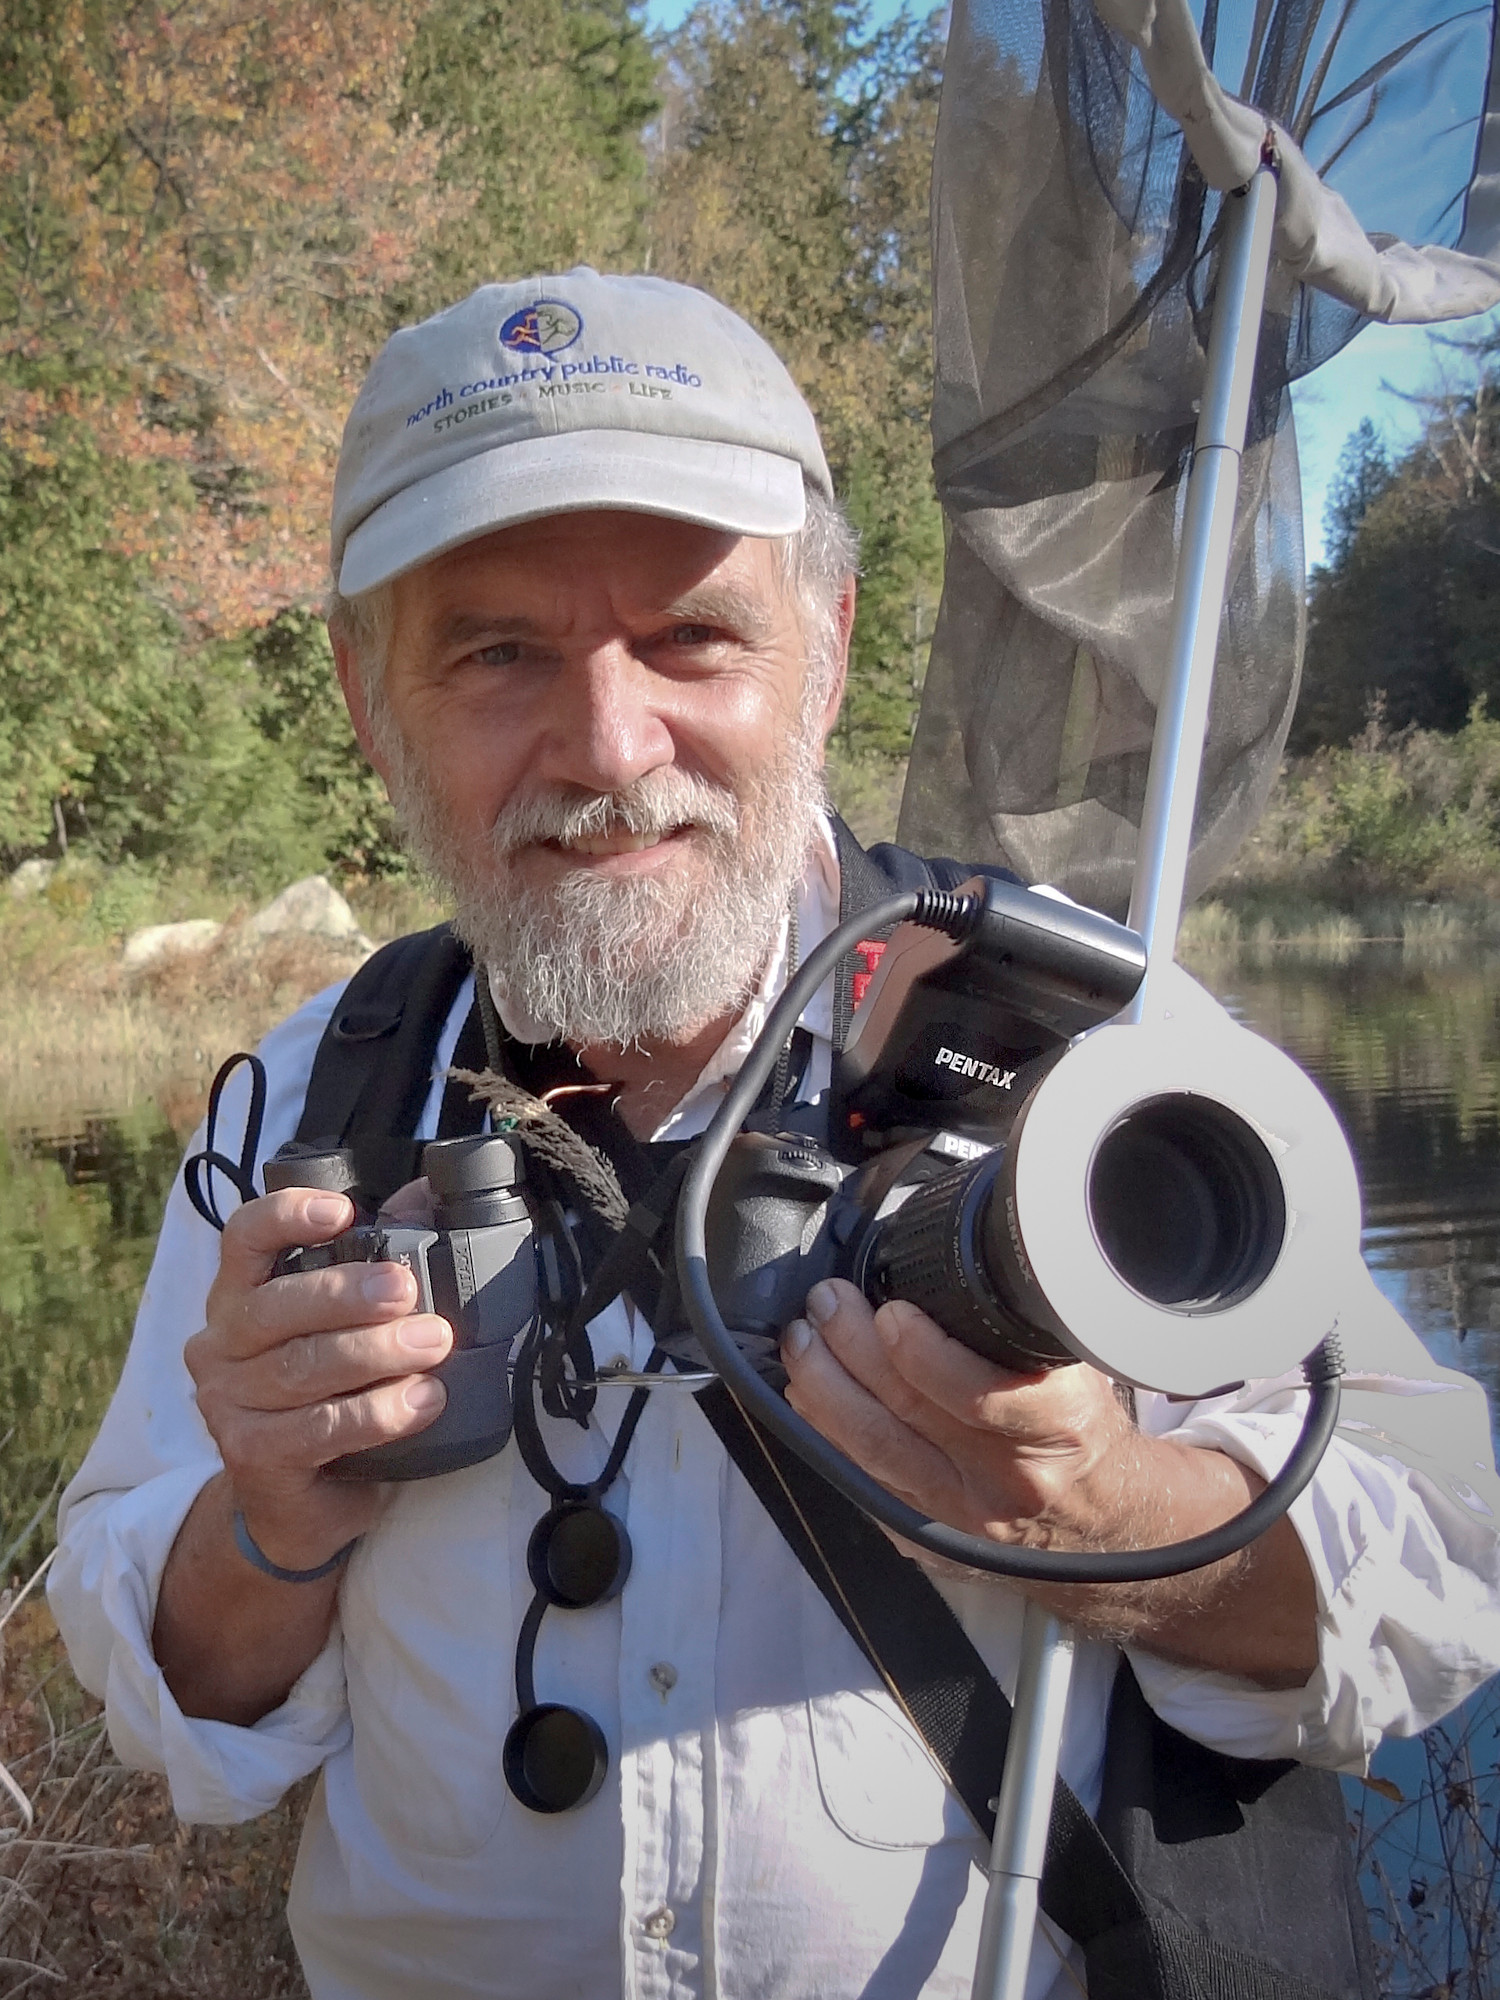 Steve-Diehl-With-Pentax-Equipment-at-Newcomb